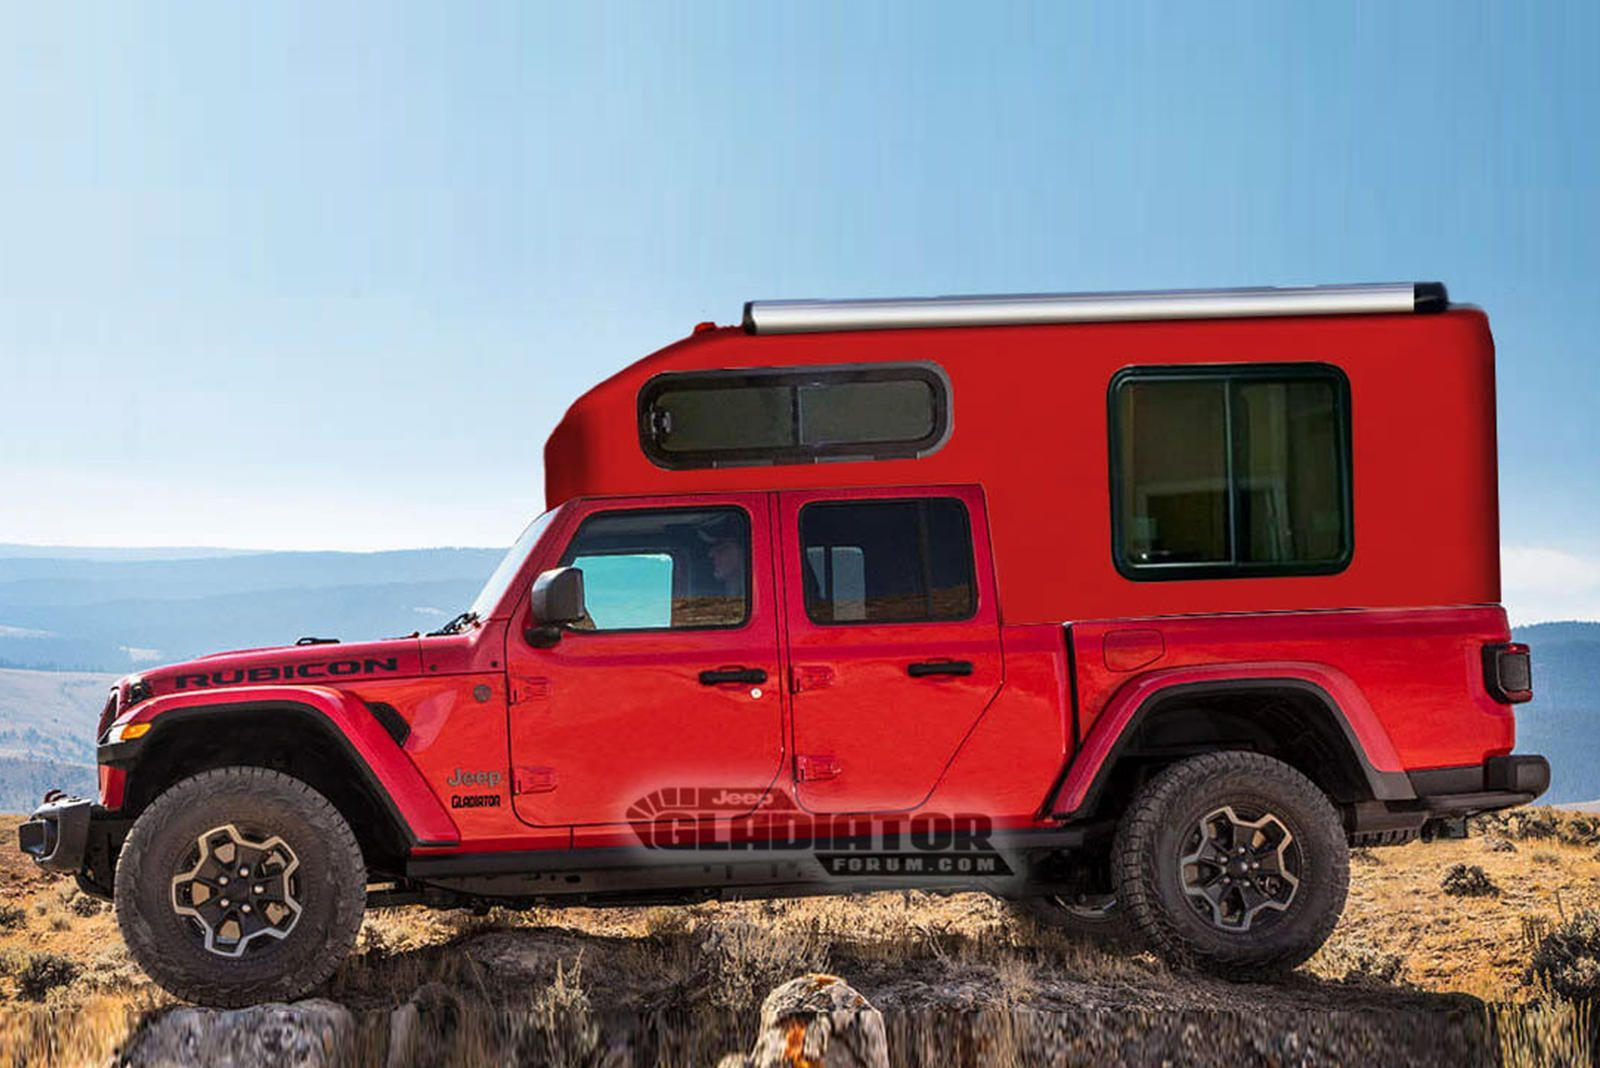 Get Ready For Jeep Gladiator Overland Adventures Jeep Gladiator